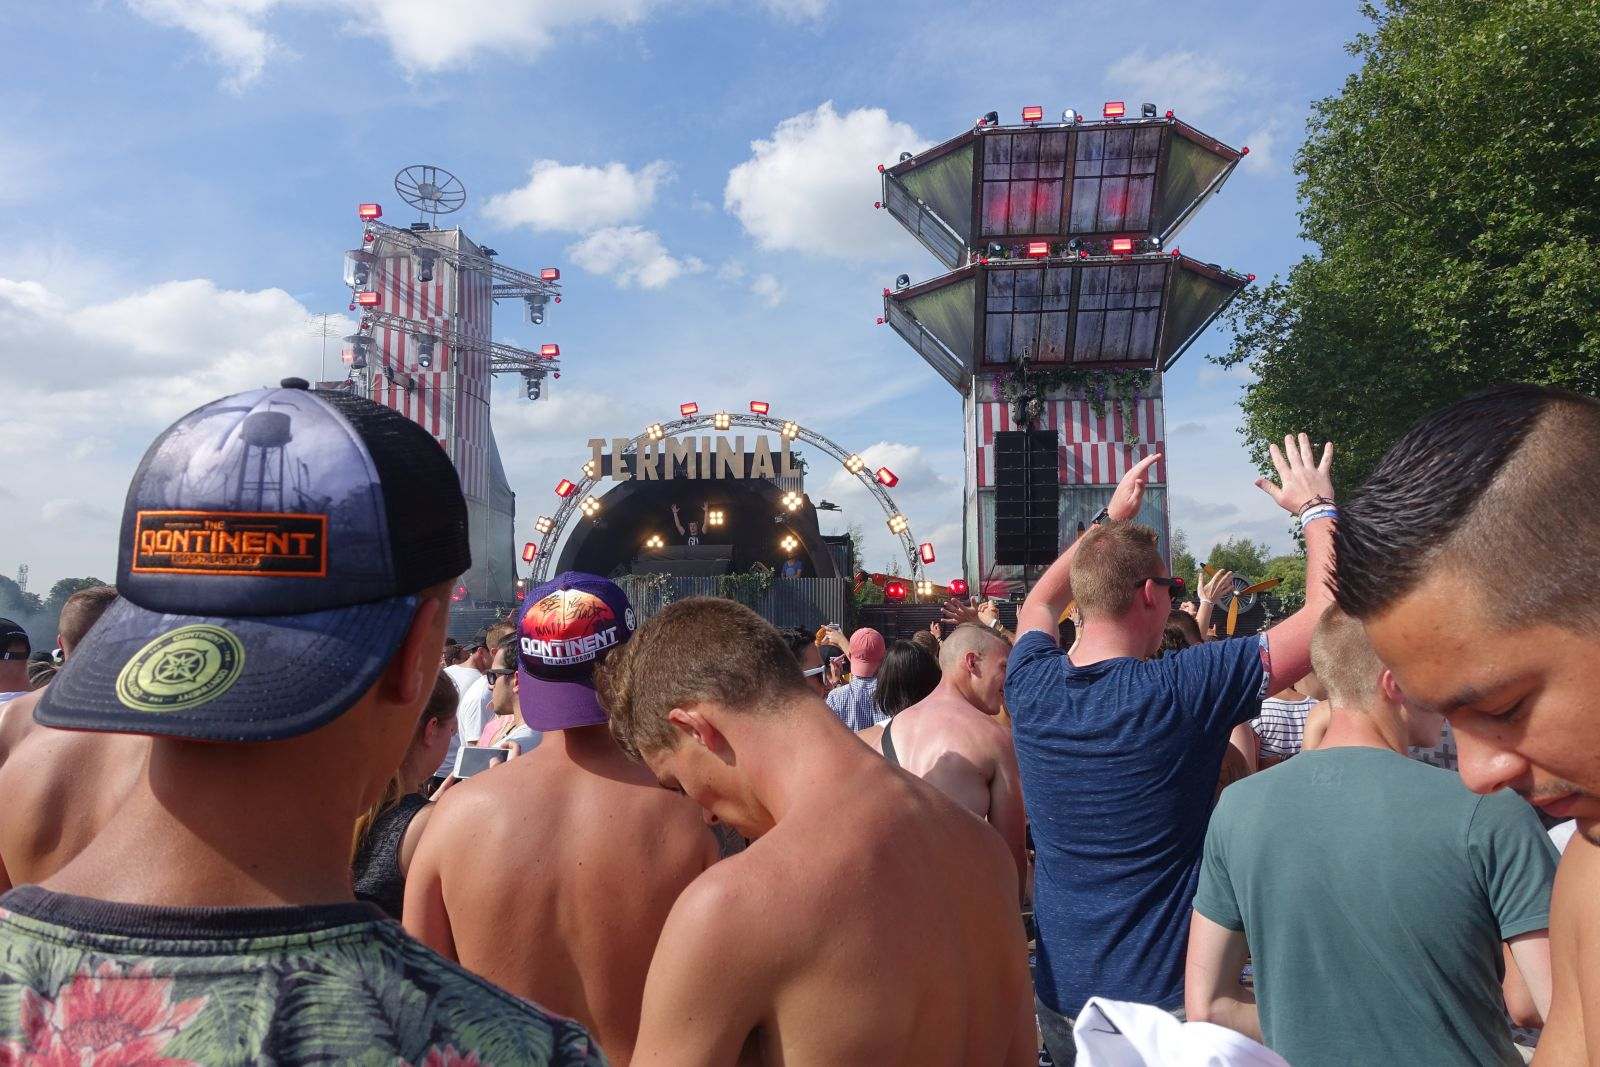 VLOG: dit was The Qontinent!